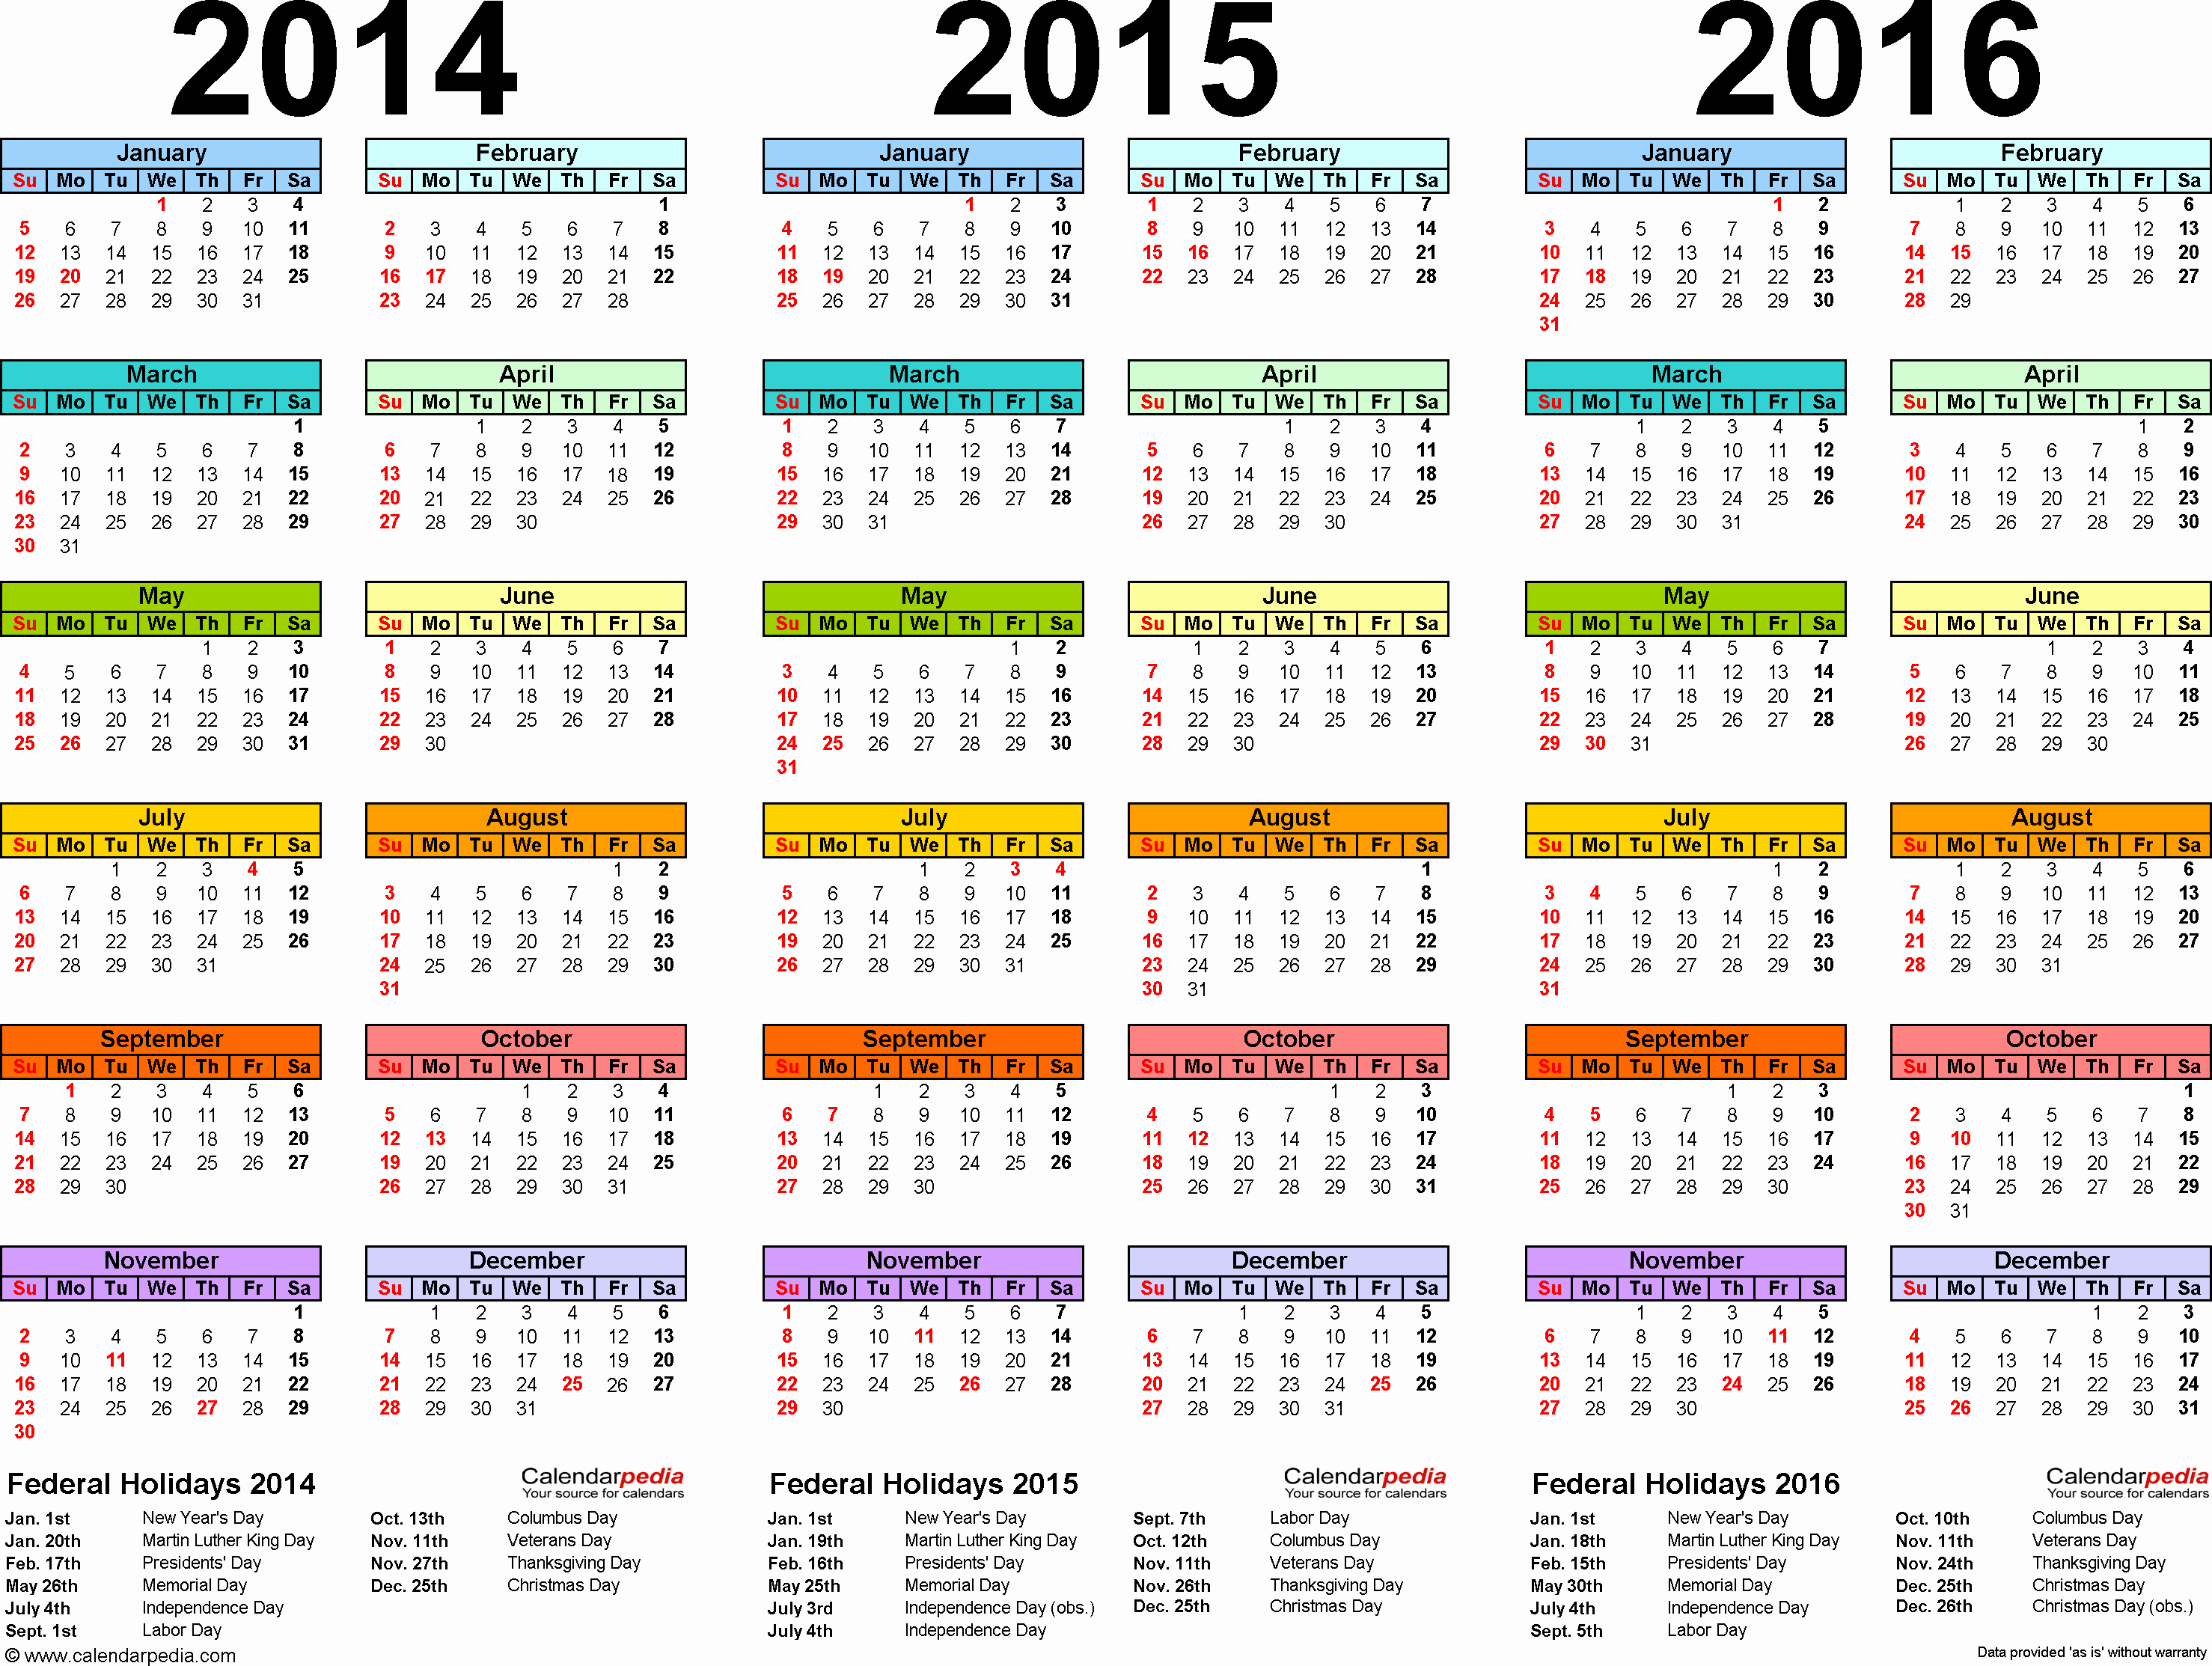 Full Year Calendar Template 2015 Lovely 2014 2015 2016 Calendar 4 Three Year Printable Excel